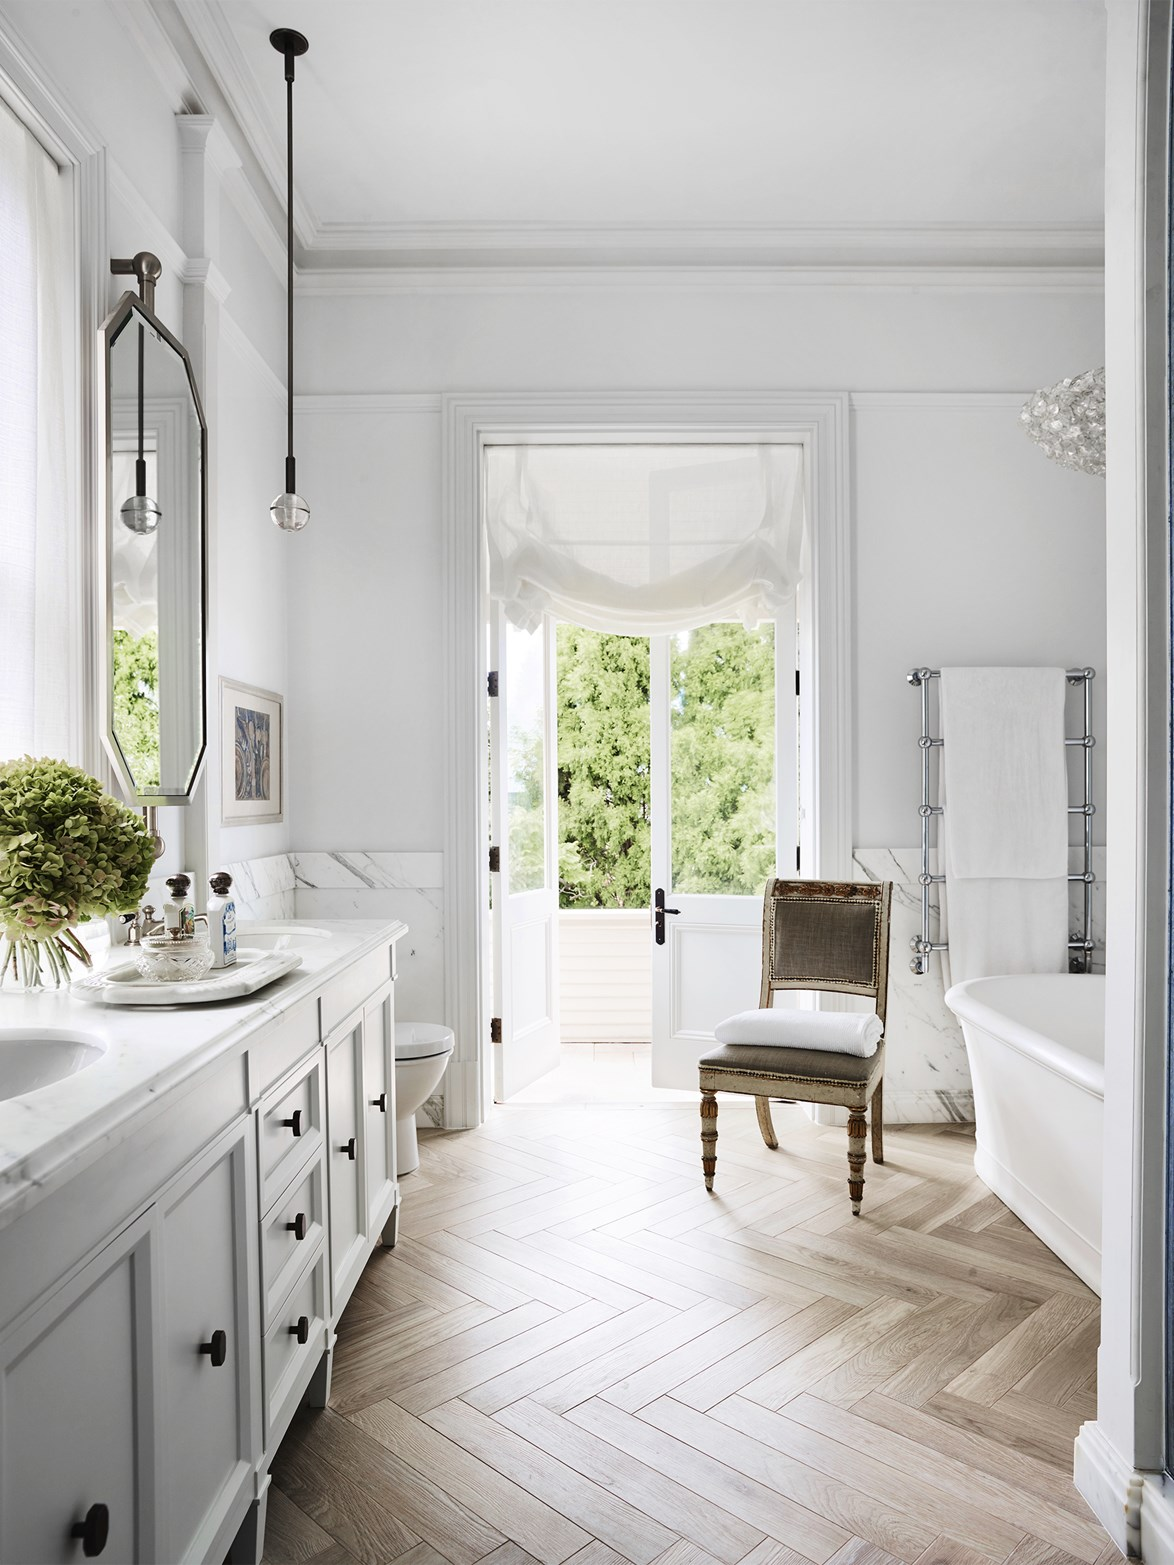 "**Timber look tiling** - More than ever, ensuite bathrooms are being seen as an extension of the master bedroom: a place to retreat and unwind. One way to achieve flow between rooms is by a) adopting an [open-concept bedroom and bathroom](https://www.homestolove.com.au/are-bathtubs-in-bedrooms-the-next-big-design-trend-6824|target=""_blank"") (which, let's face it, isn't for everyone) or b) keeping the flooring consistent across both spaces. That's where wood-look tiling comes in. Wood always adds warmth and, when laid in a herringbone pattern, feels very Parisian-chic. *Photo: Anson Smart / Story: Belle*"